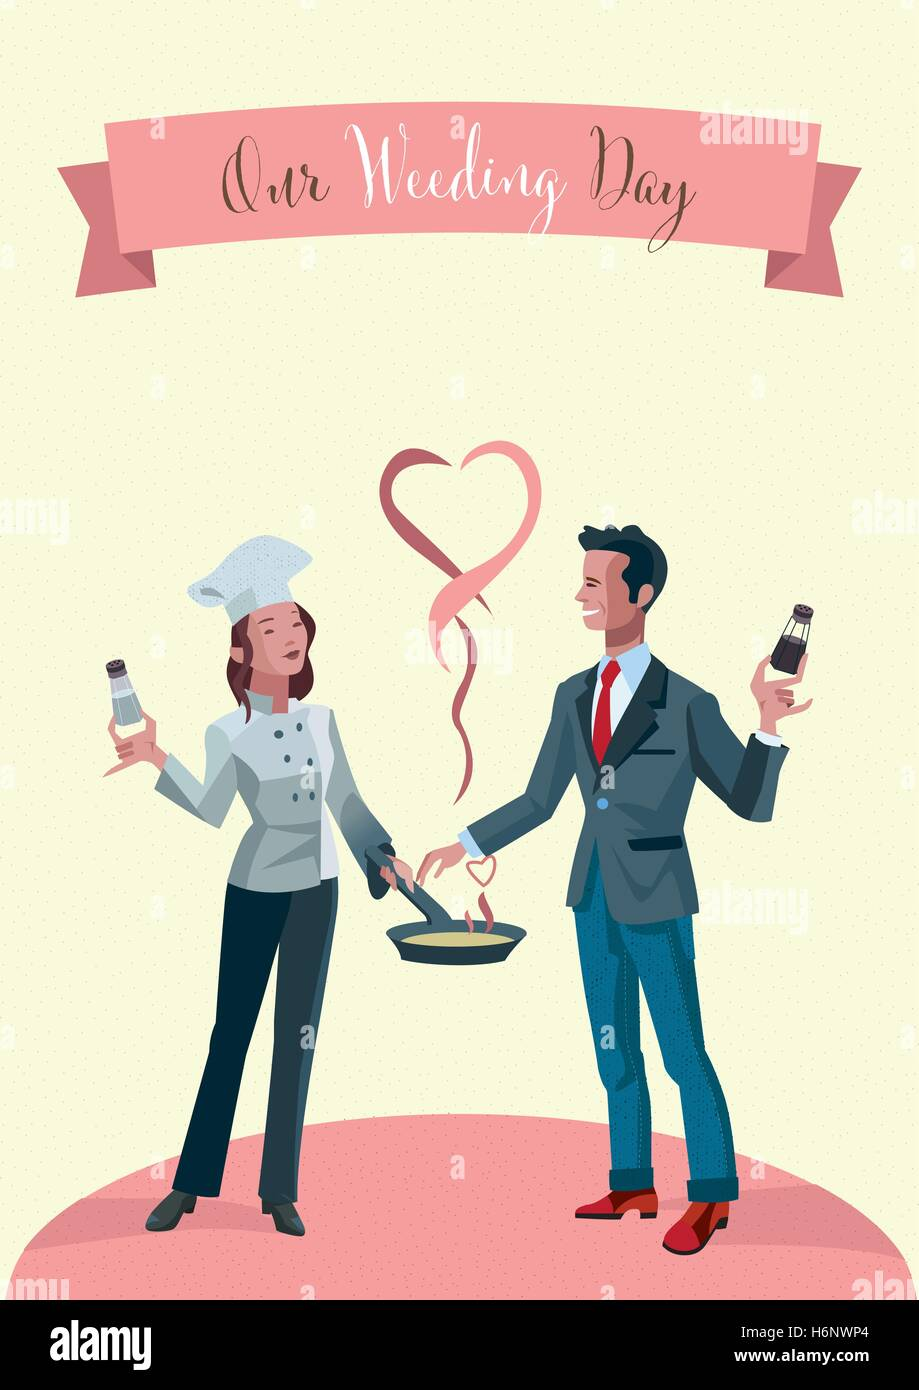 Wedding invitation. A young married couple dressed as chefs. - Stock Image